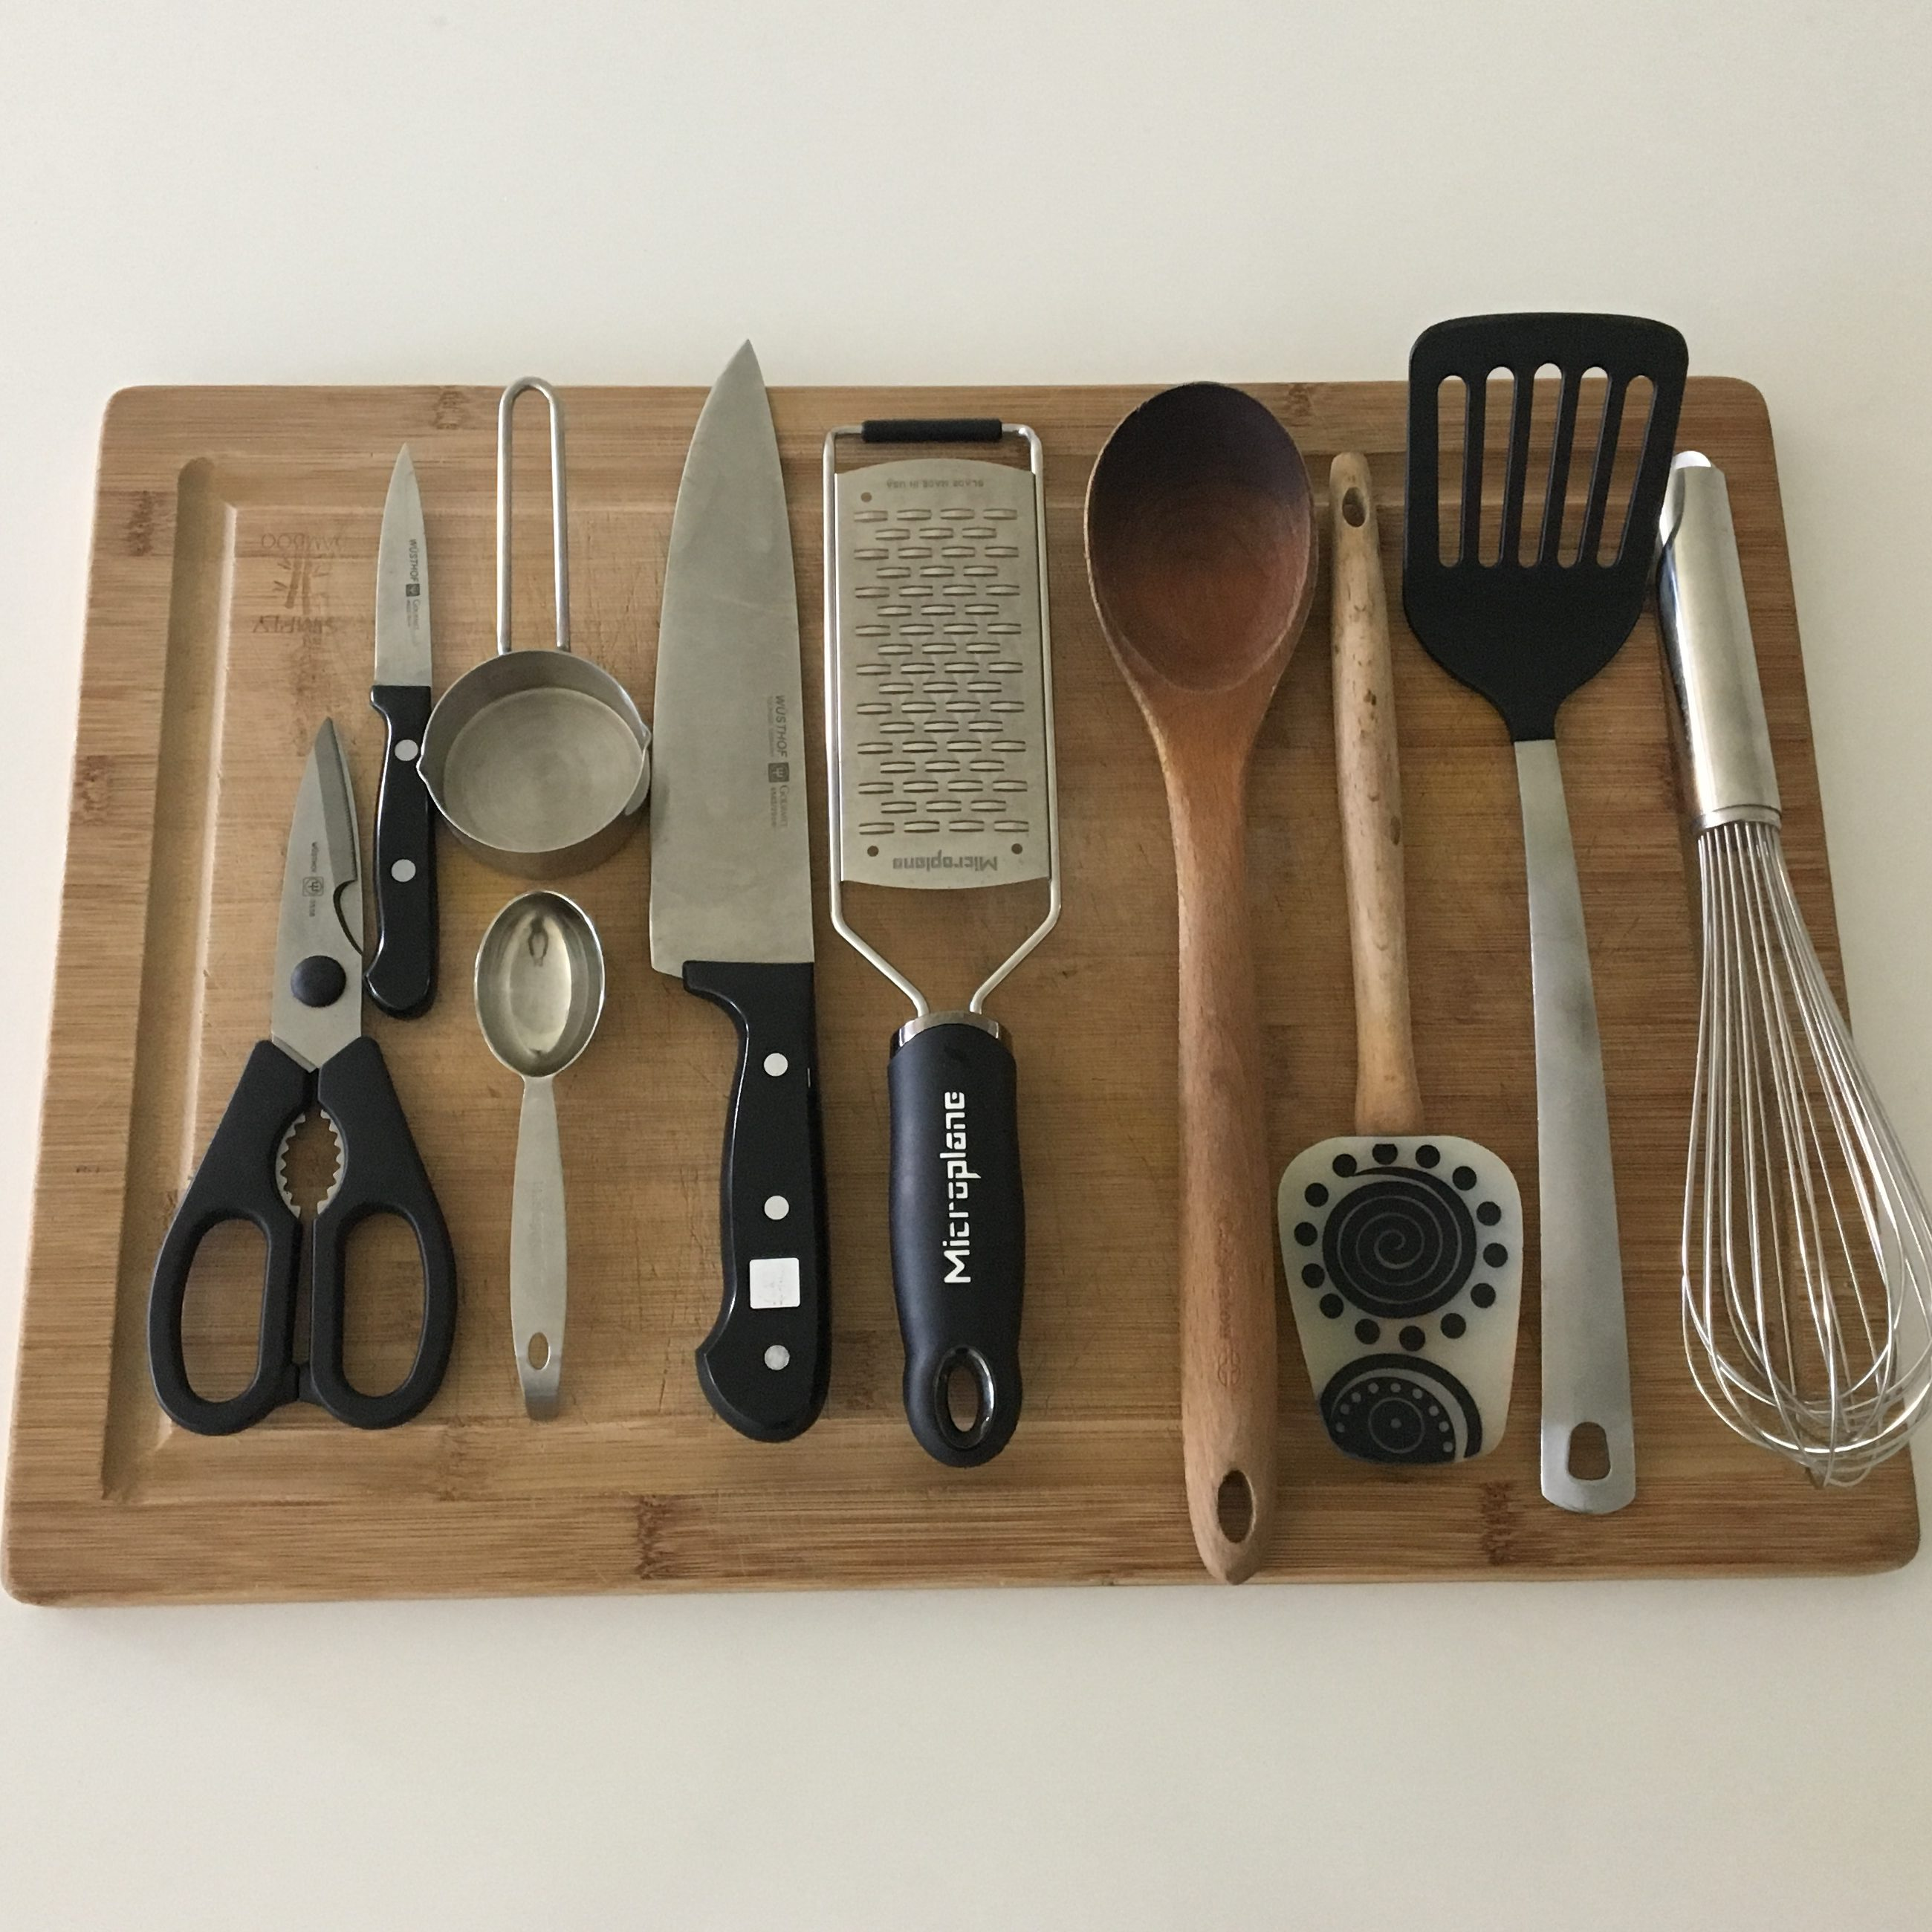 Minimalist kitchen essentials